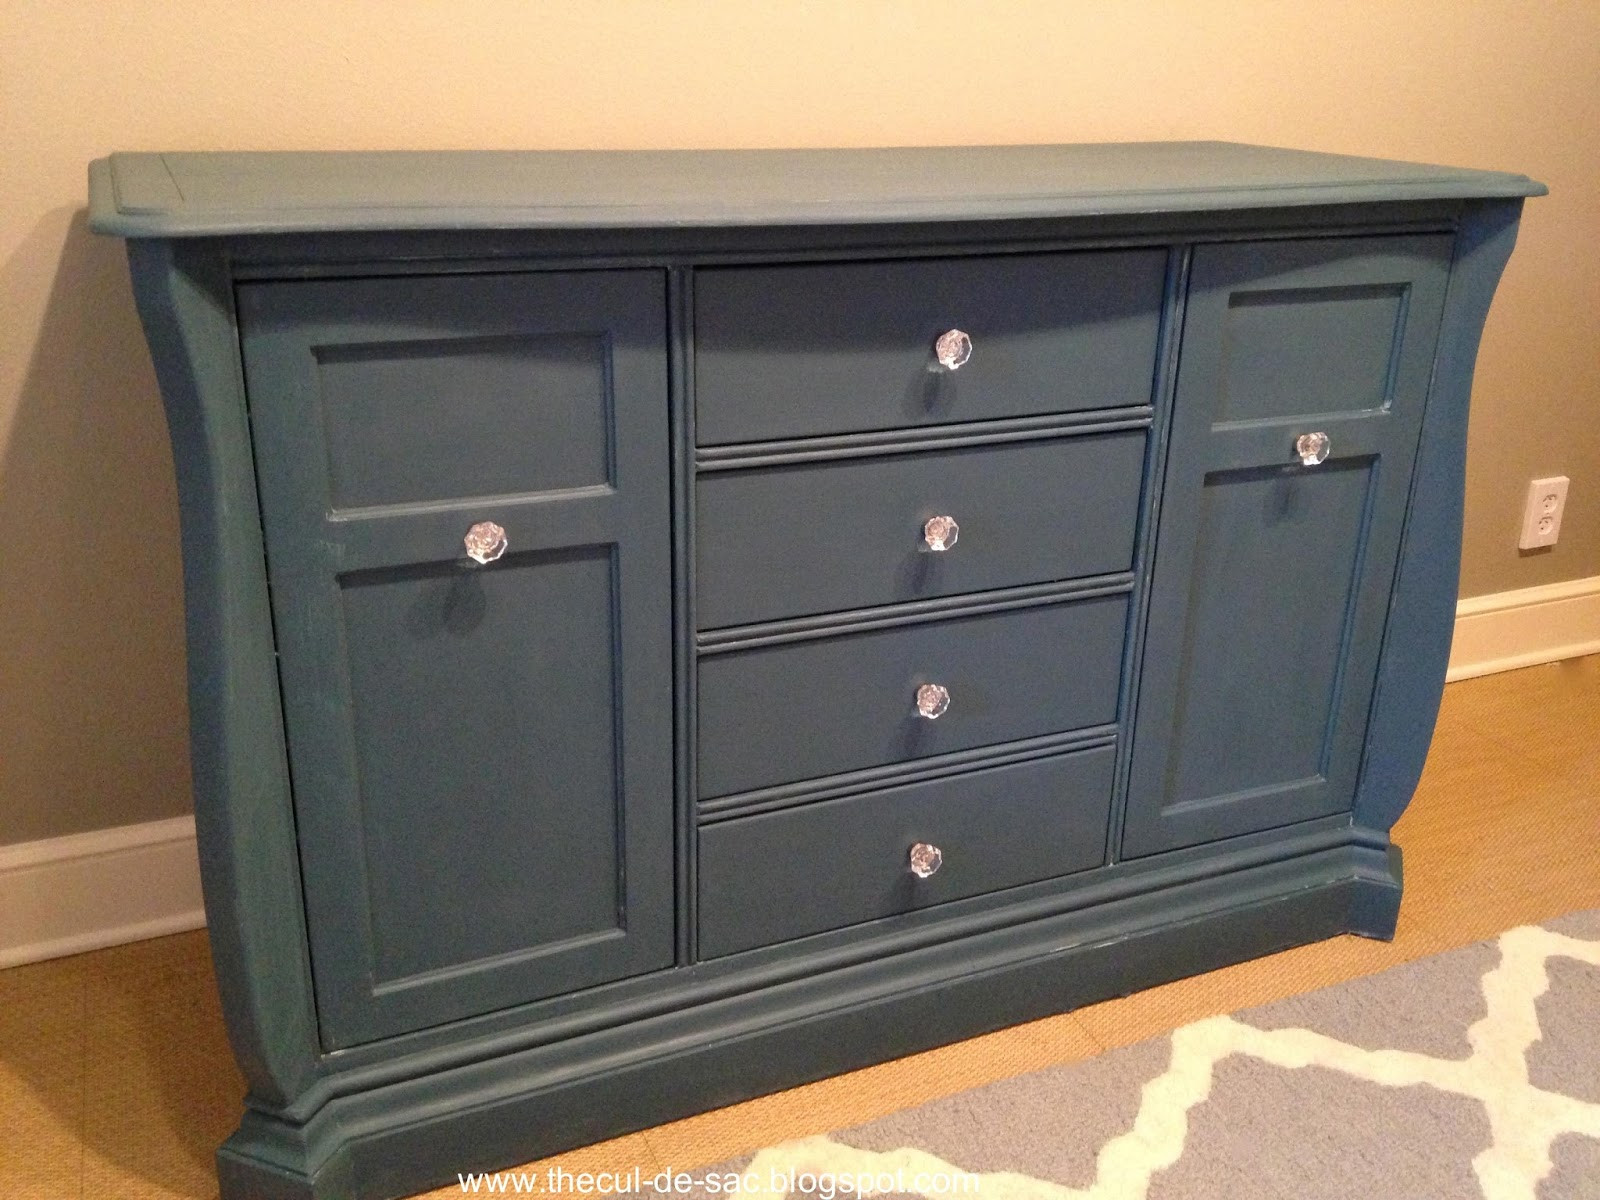 Best ideas about Chalk Paint Colors For Furniture . Save or Pin the cul de sac Chalk Paint Makeover From Changing Table Now.